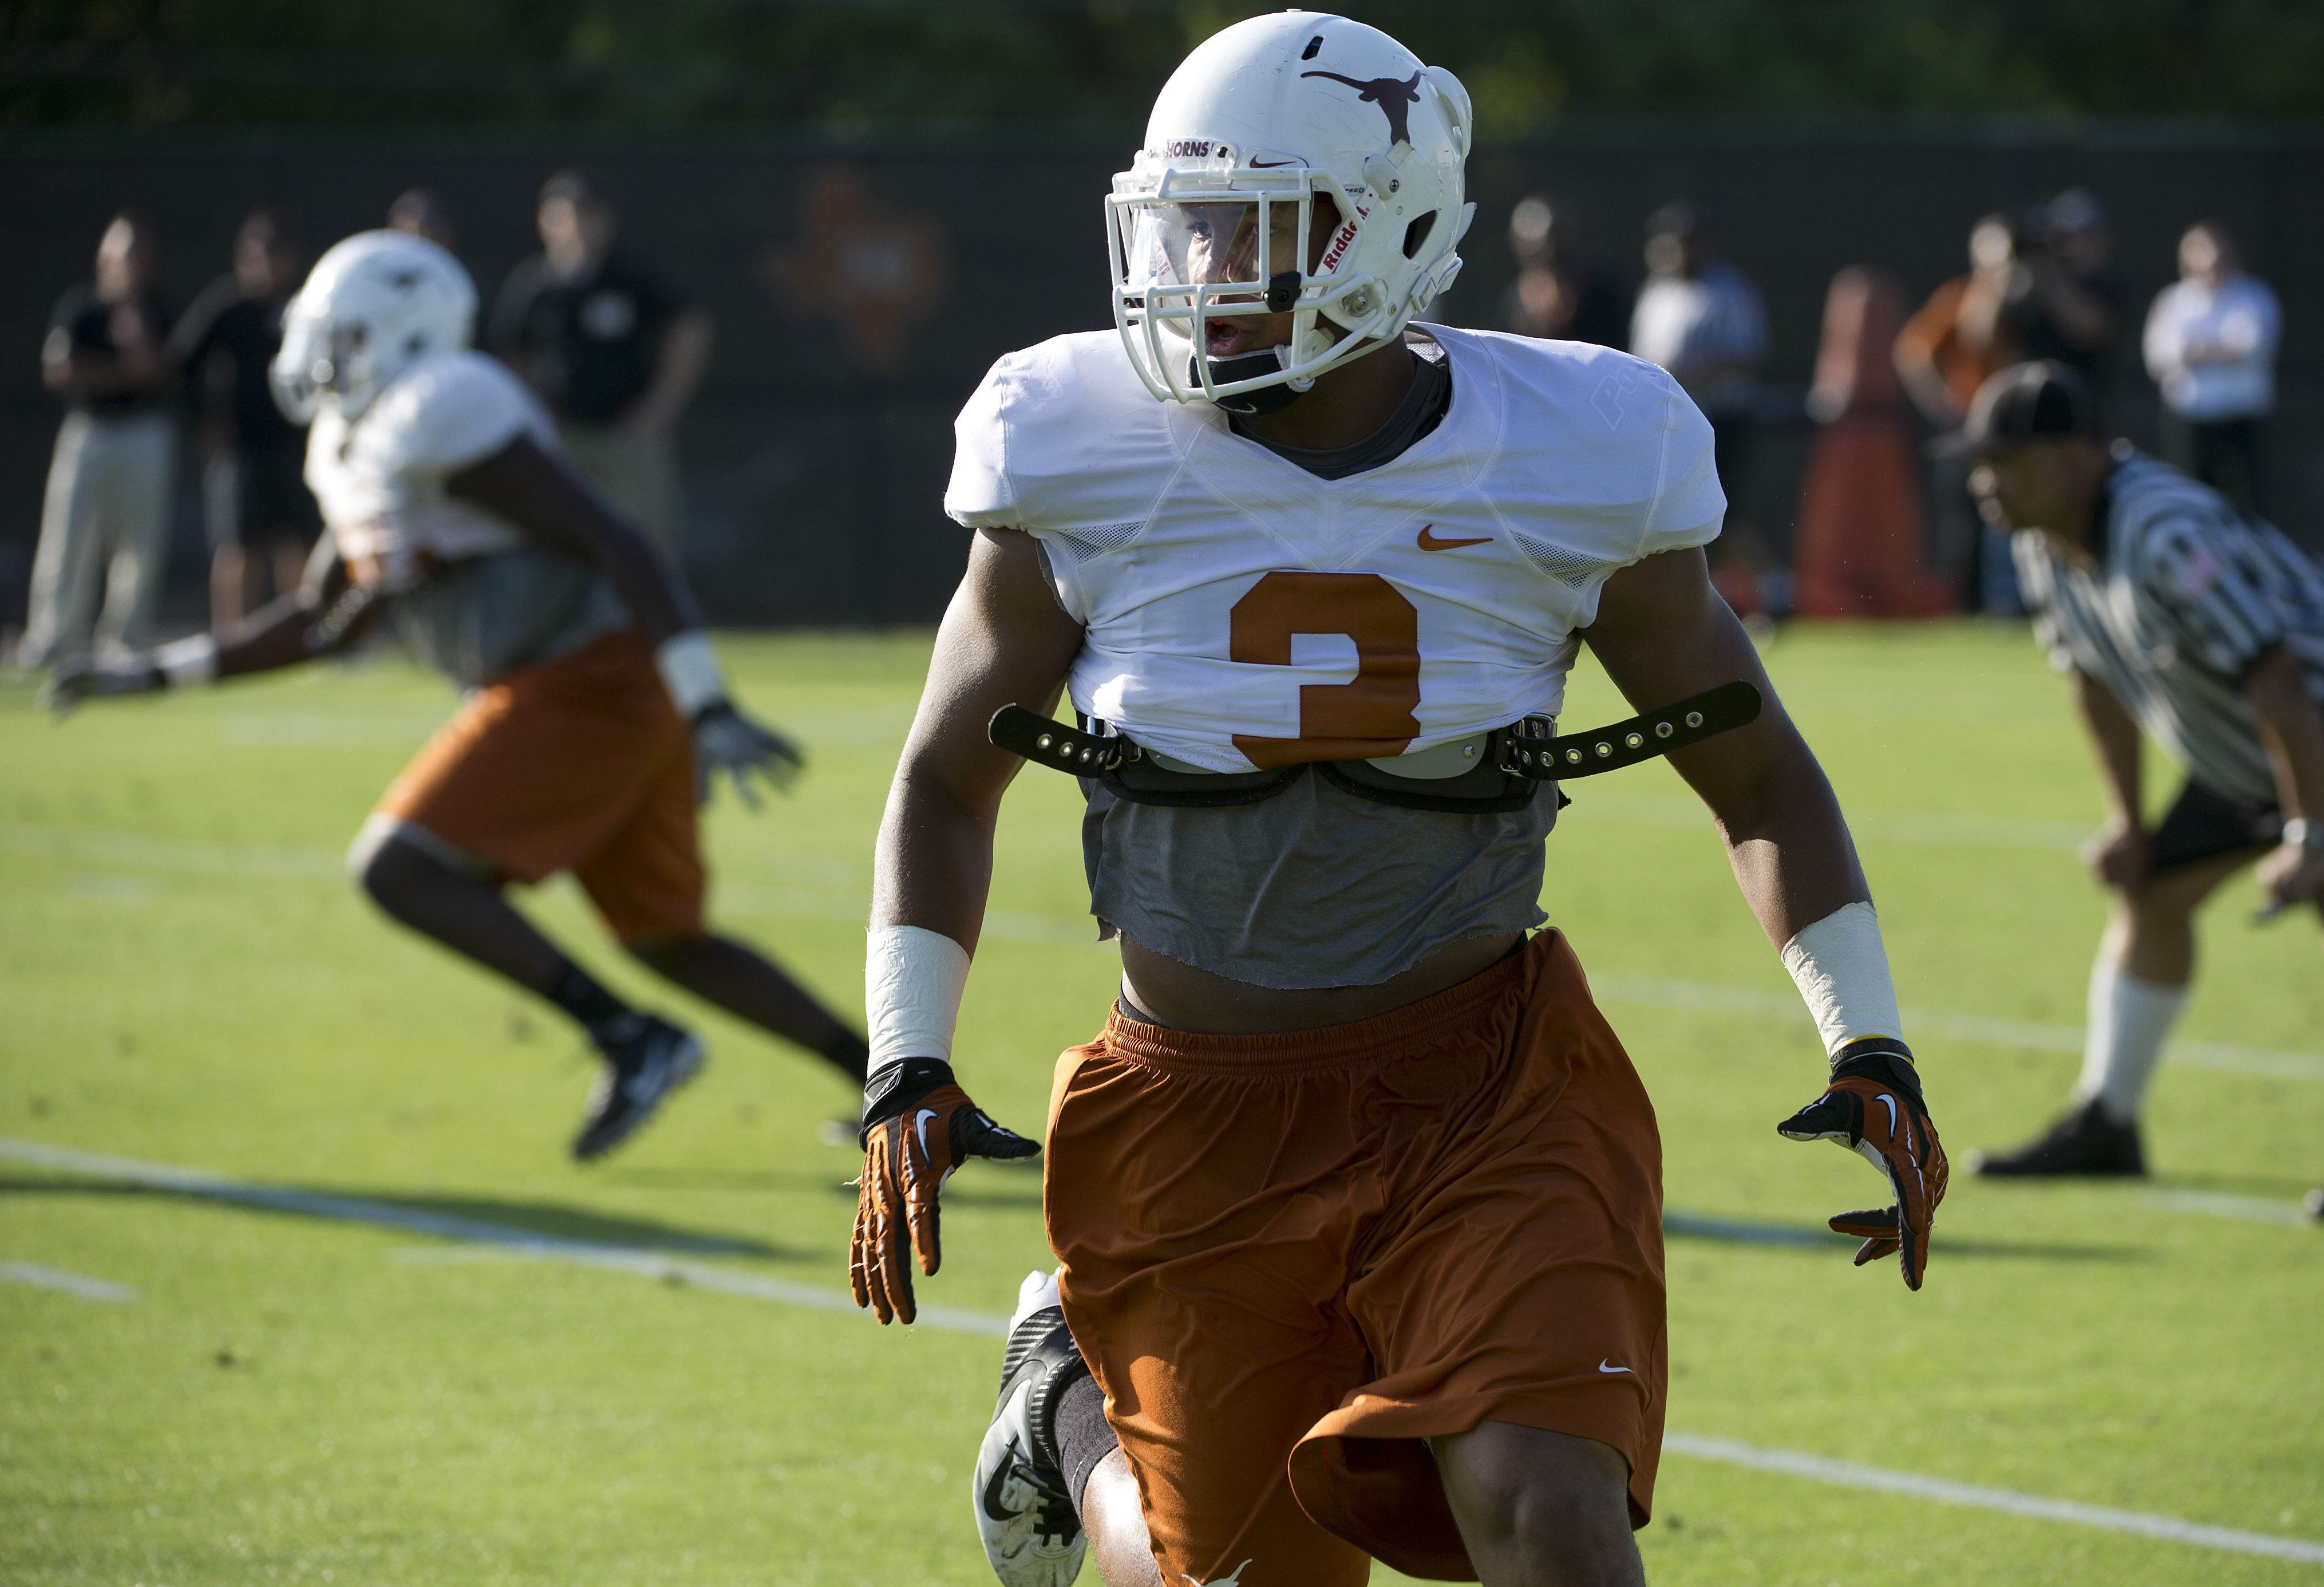 LB Jordan Hicks Texas football, Spring football, Texas